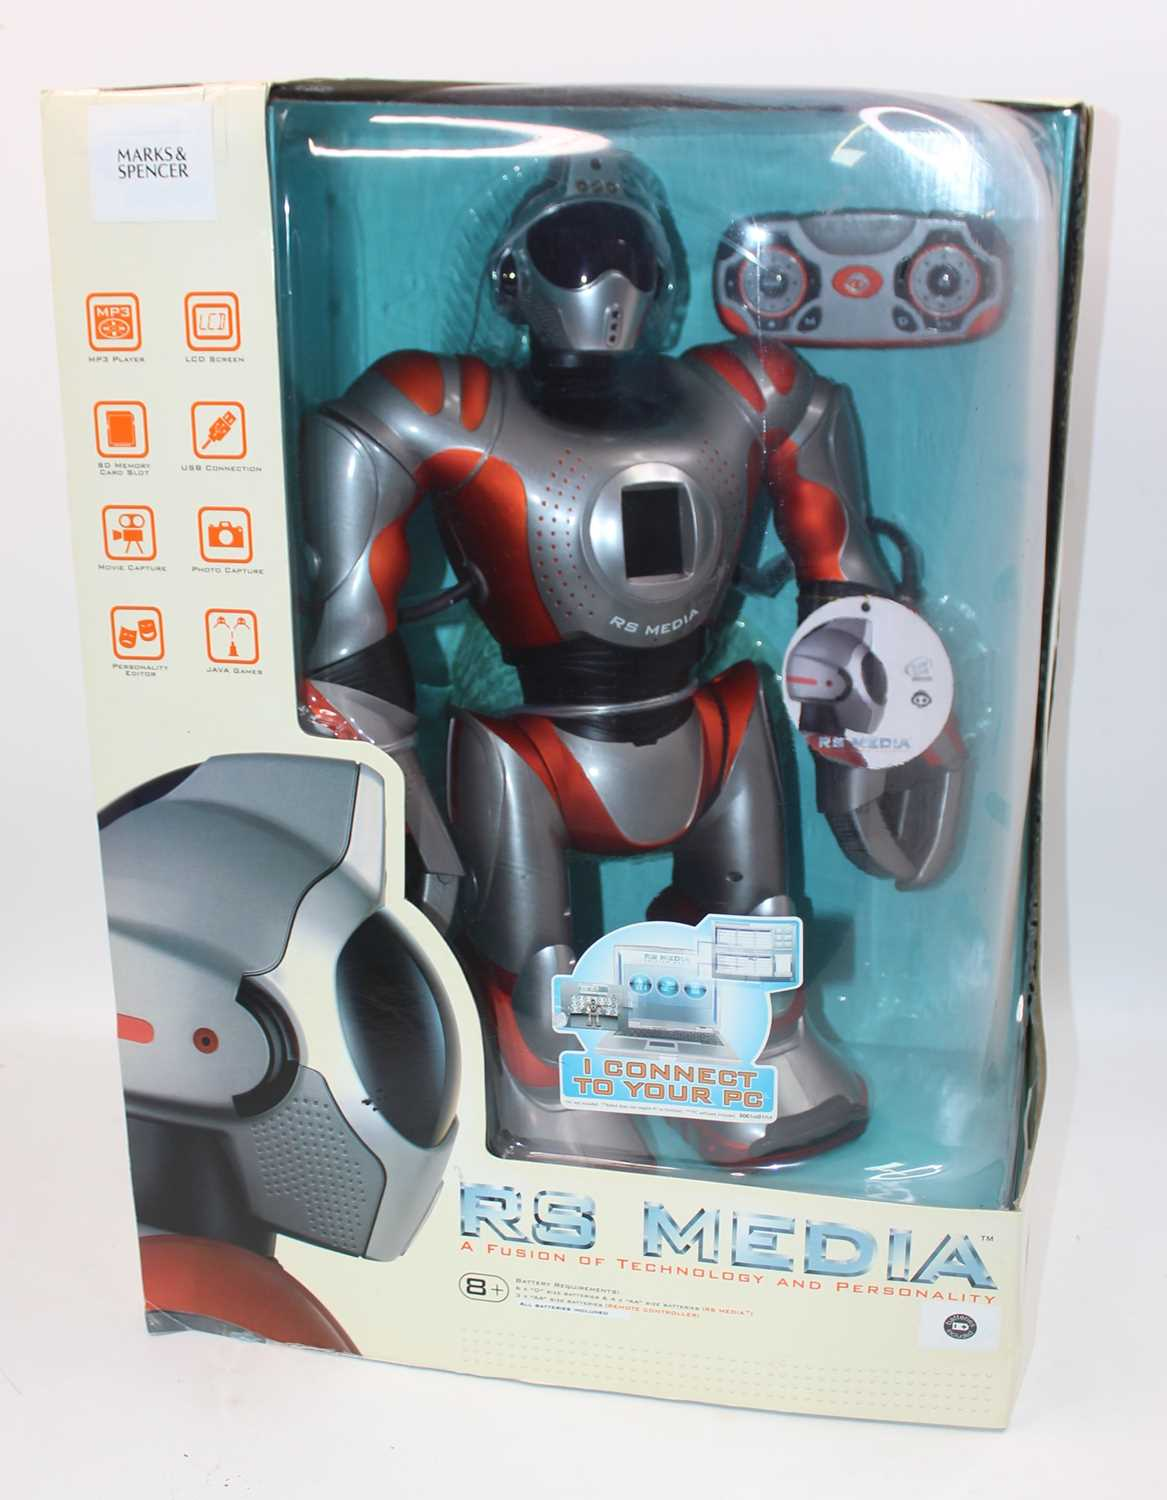 Wow Wee Product RS Media Large Scale Robot, un-opened example, appears complete in the original box